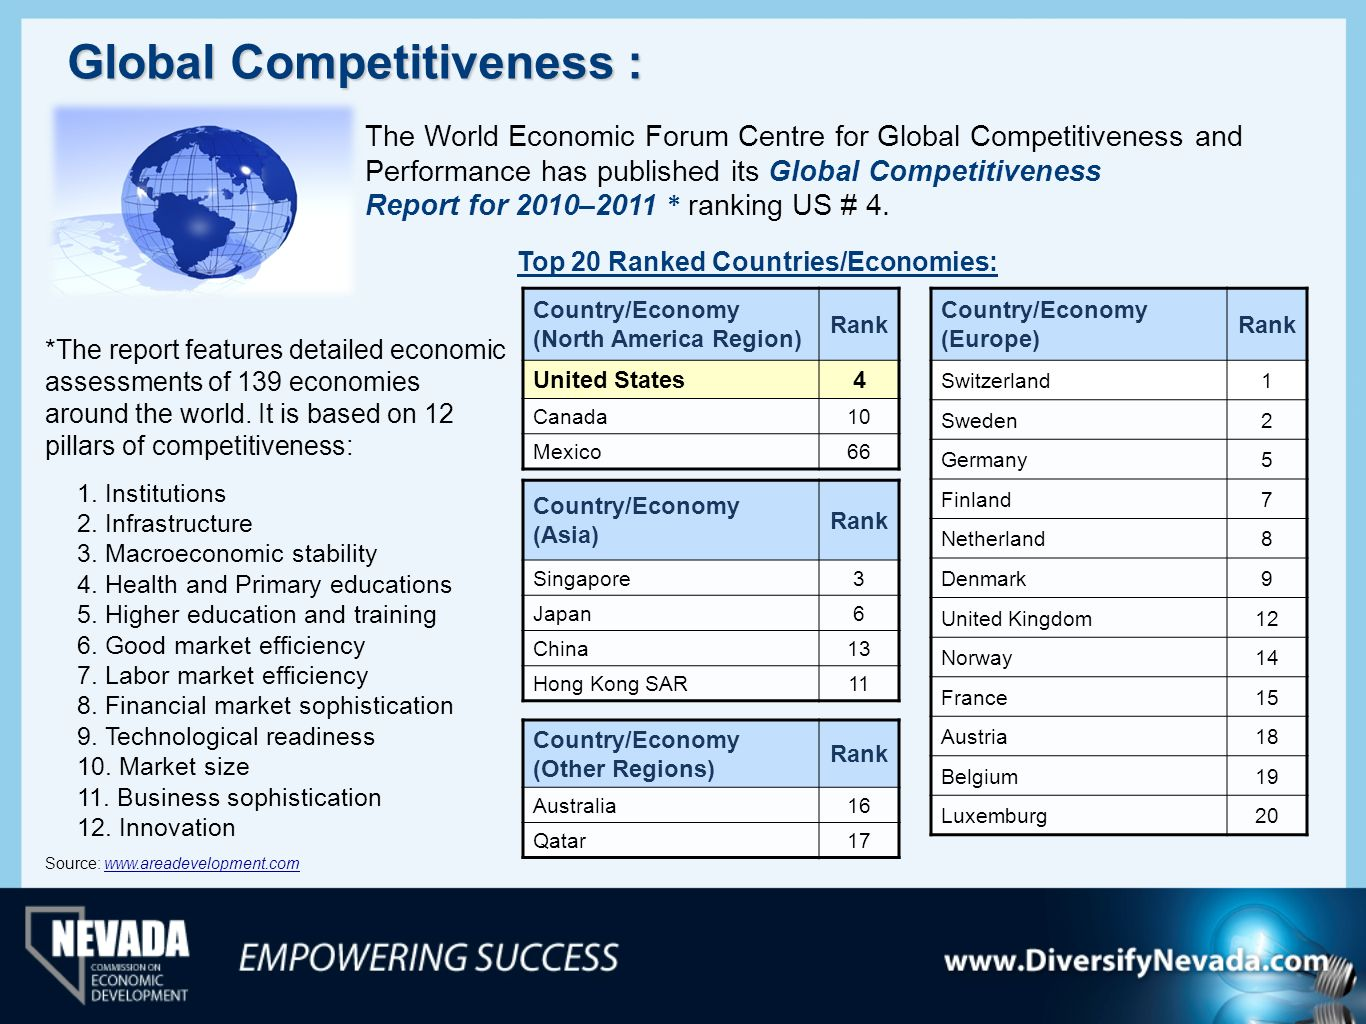 Global Competitiveness : The World Economic Forum Centre for Global Competitiveness and Performance has published its Global Competitiveness Report fo